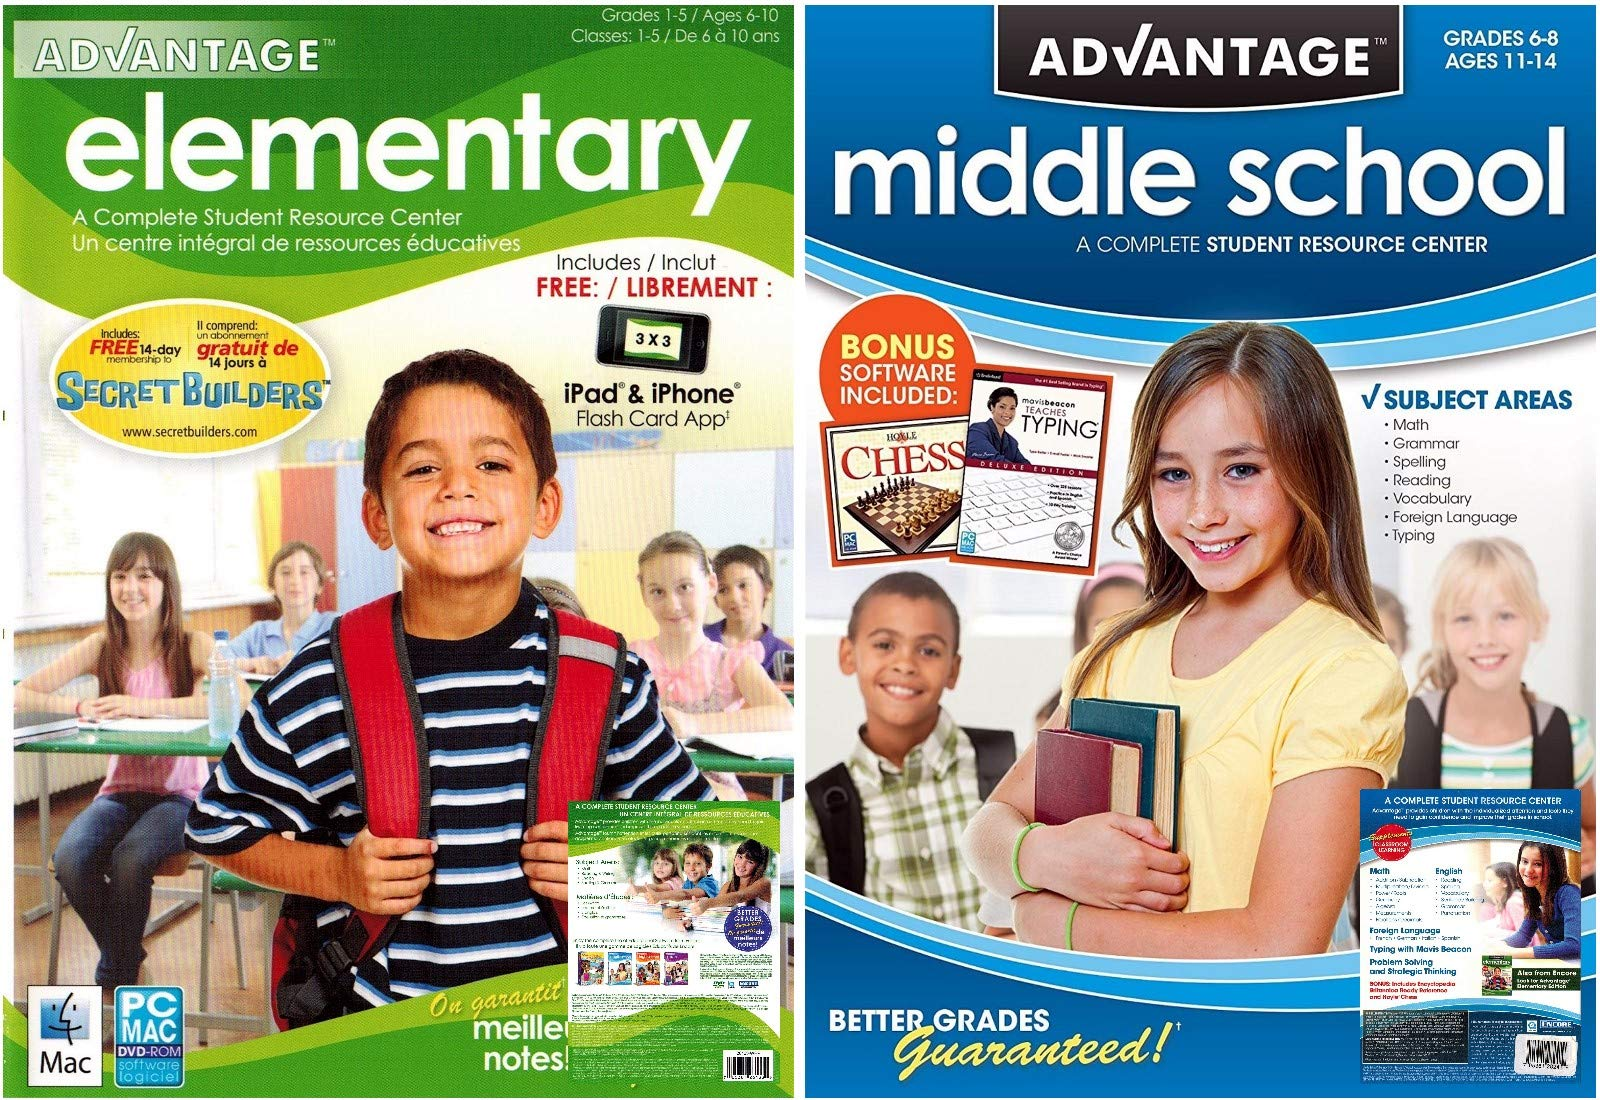 Advantage Elementary / Middle School Student Resource Centers - Grade School Learning Software Bundle by Encore Software